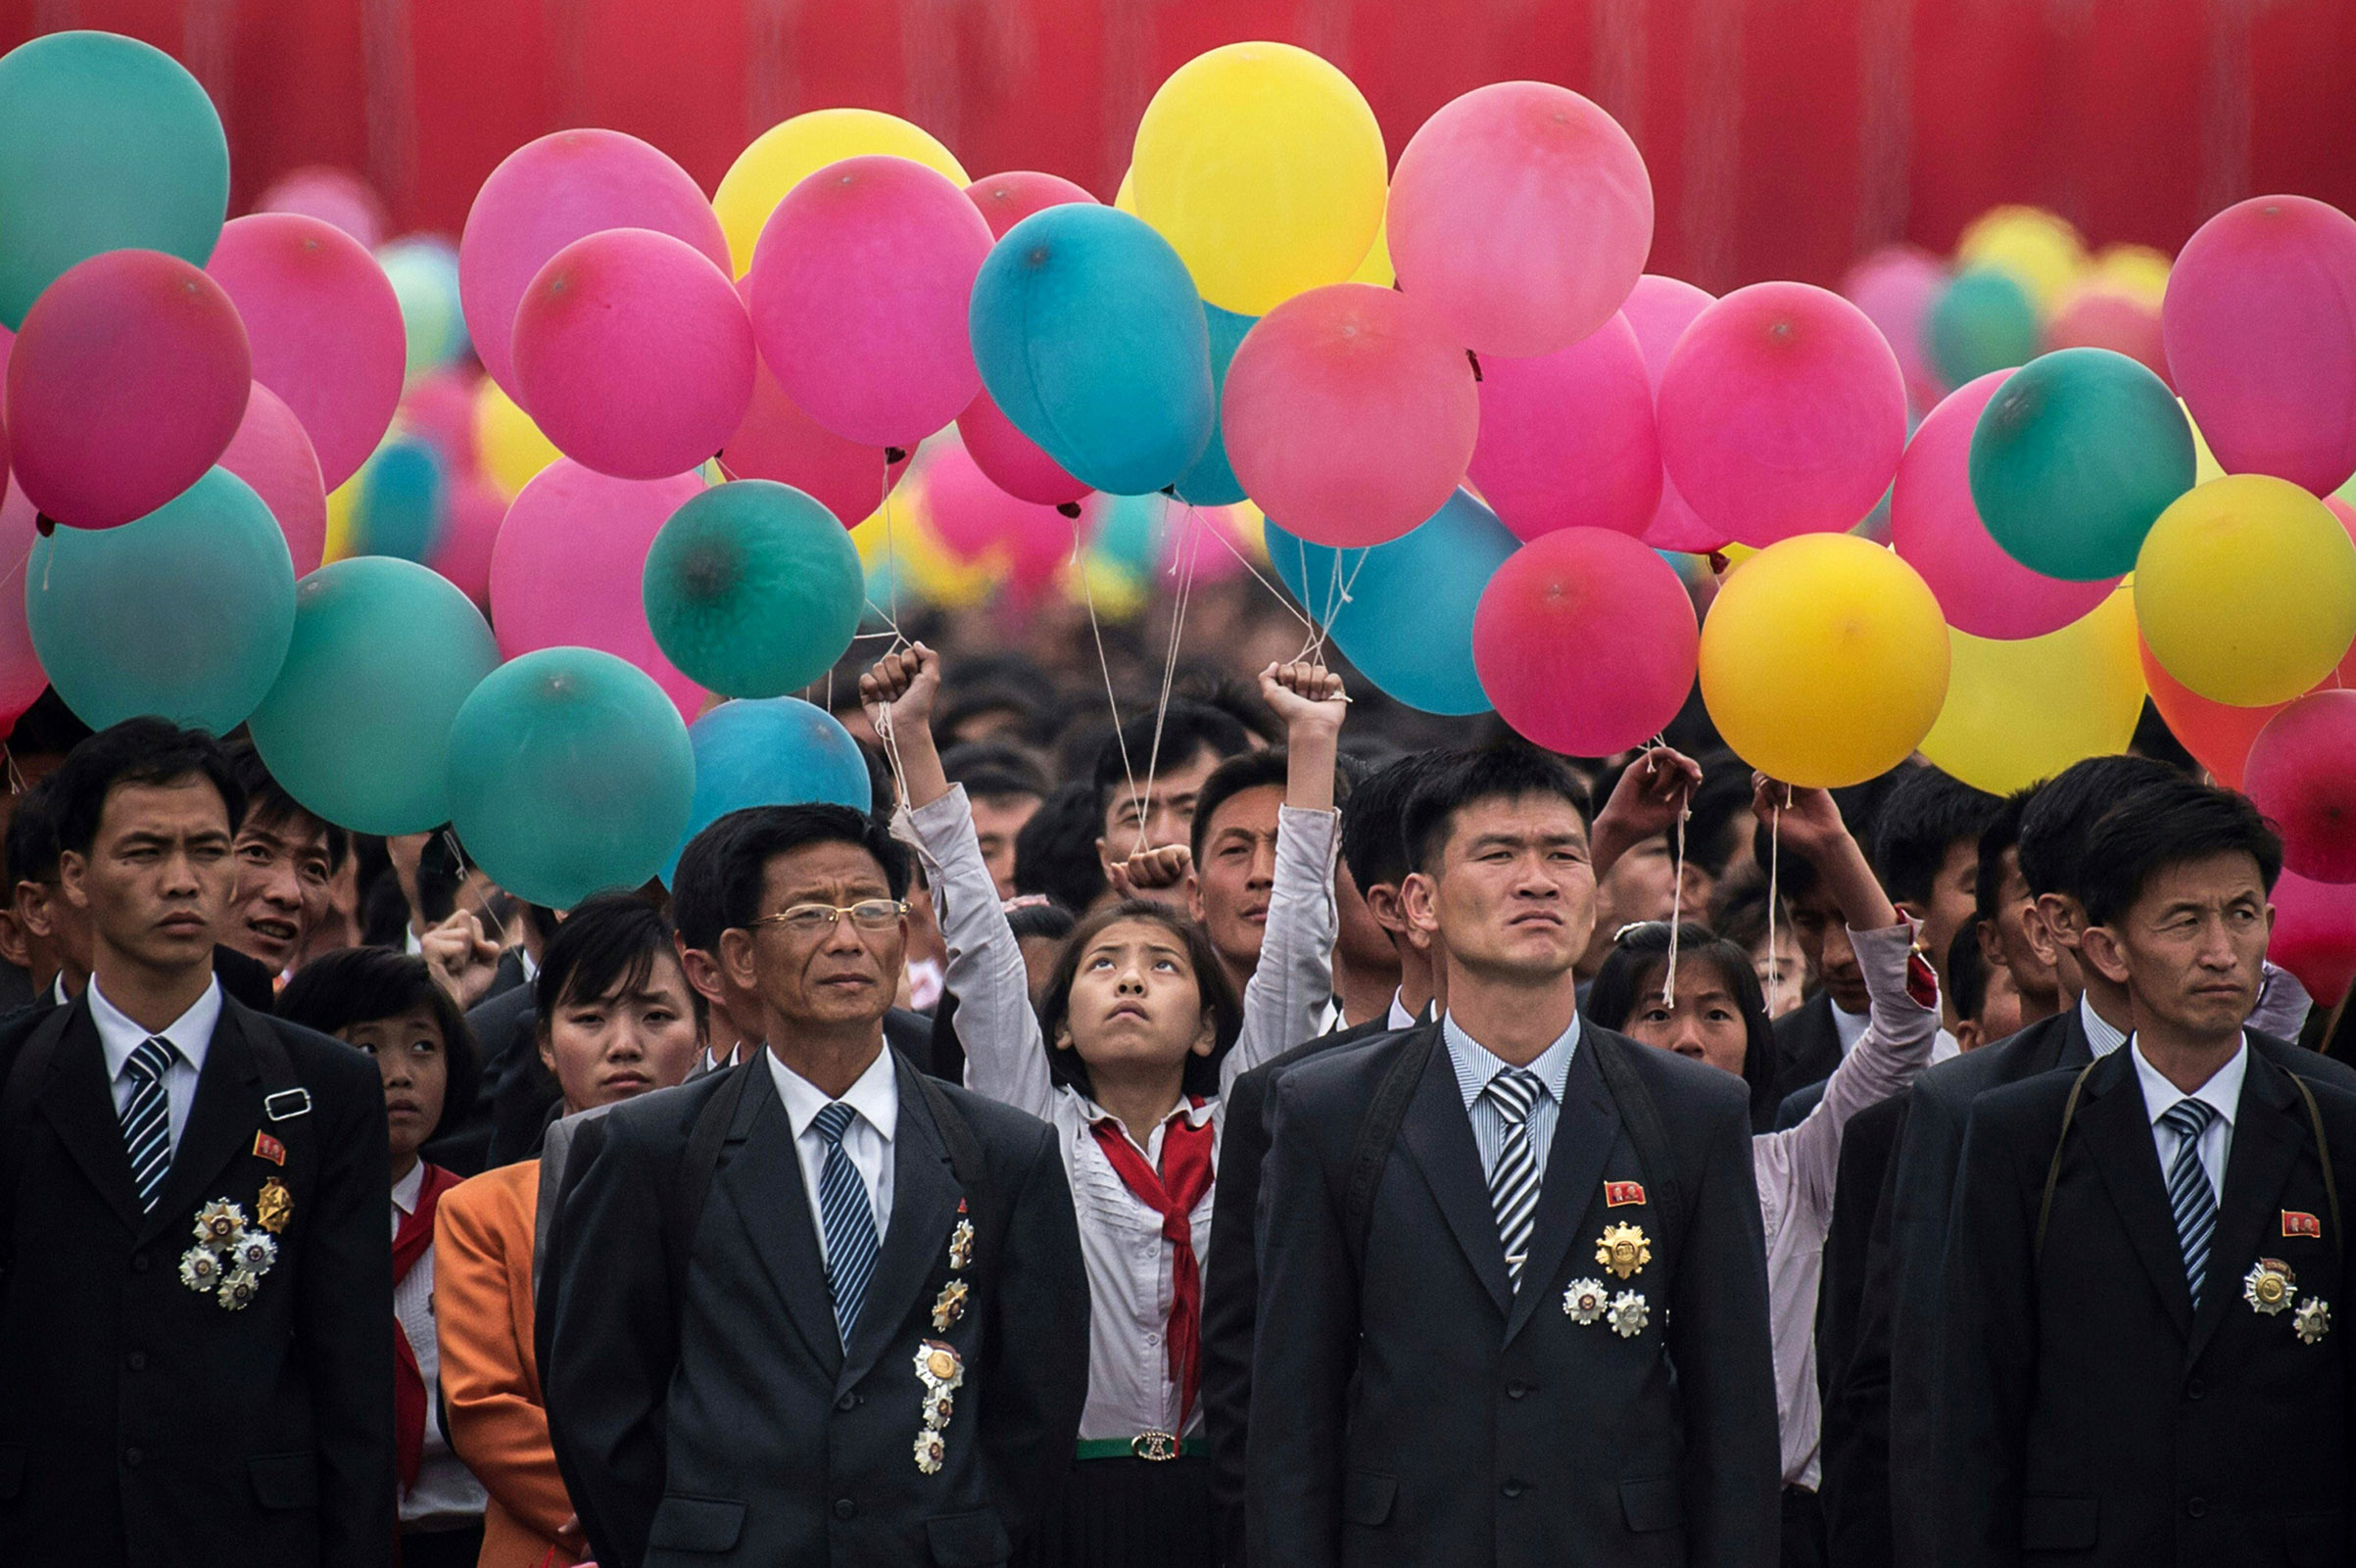 Participants wait to take part in a mass parade marking the end of the 7th Workers Party Congress in Kim Il Sung Square in Pyongyang on May 10, 2016.